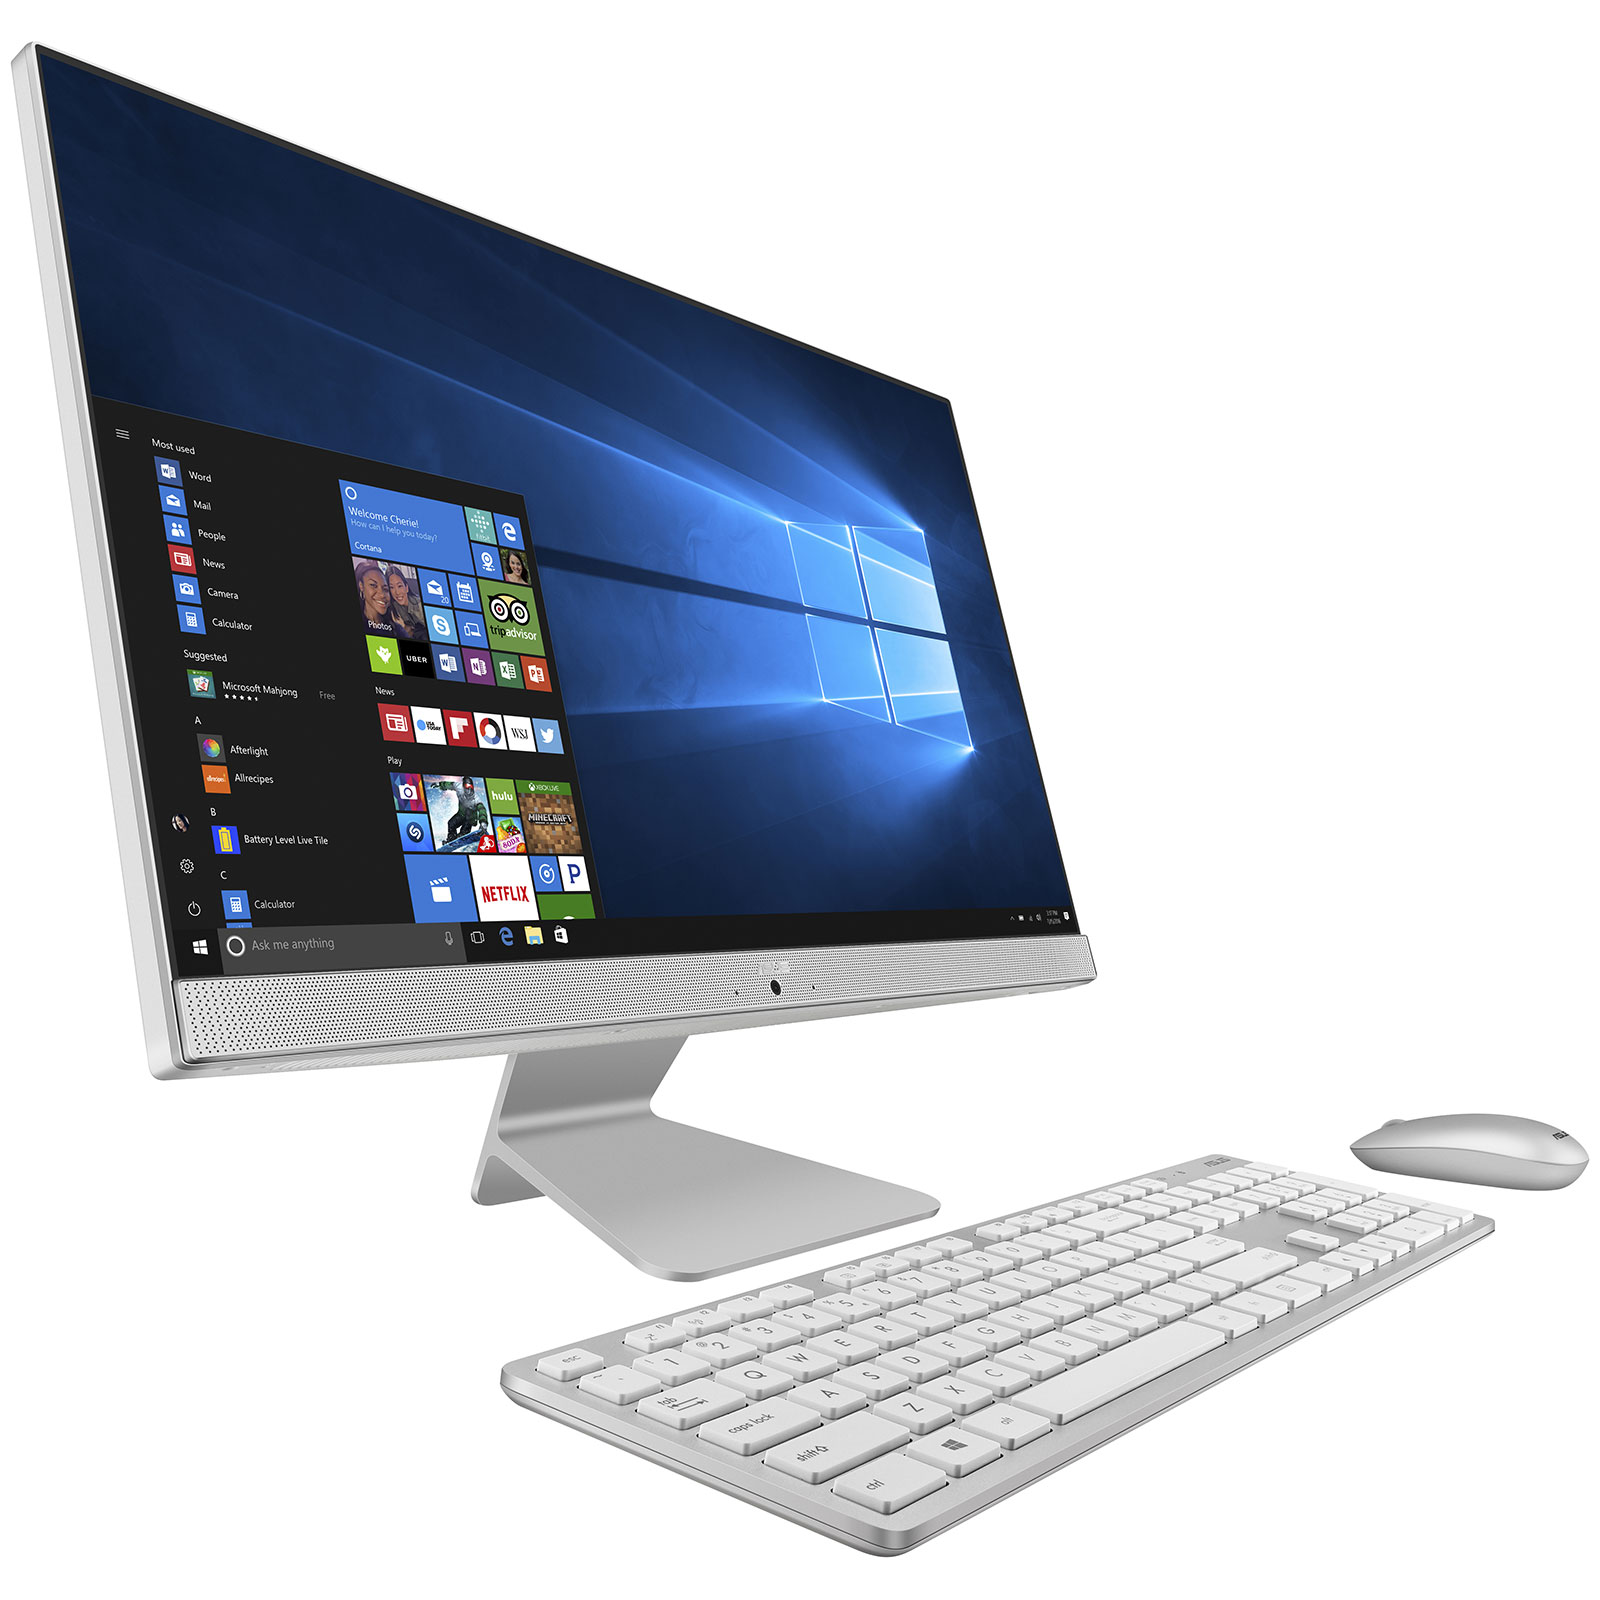 Asus vivo aio v241icuk wa039t pc de bureau asus sur - Afficher ordinateur sur bureau windows 8 ...